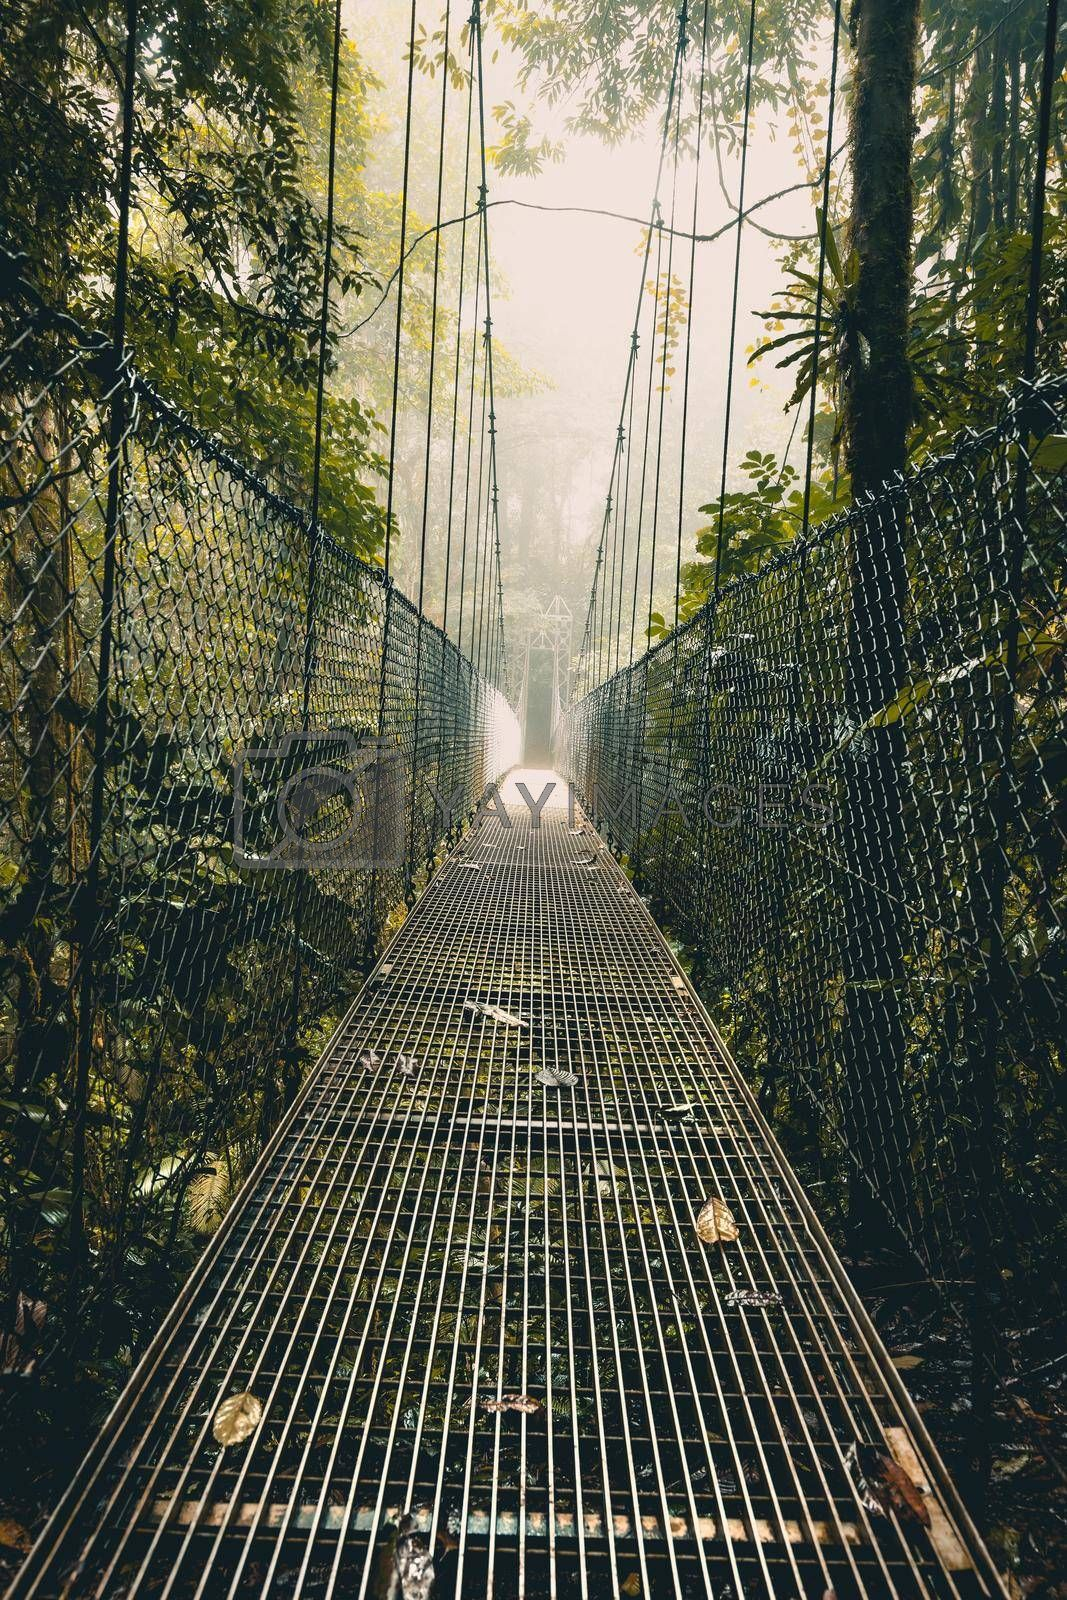 Hanging Bridge in the Forest. Rope Bridge. The Way through the Rainforest. Light in the End of a Way. Arenal Hanging Bridges. Costa Rica